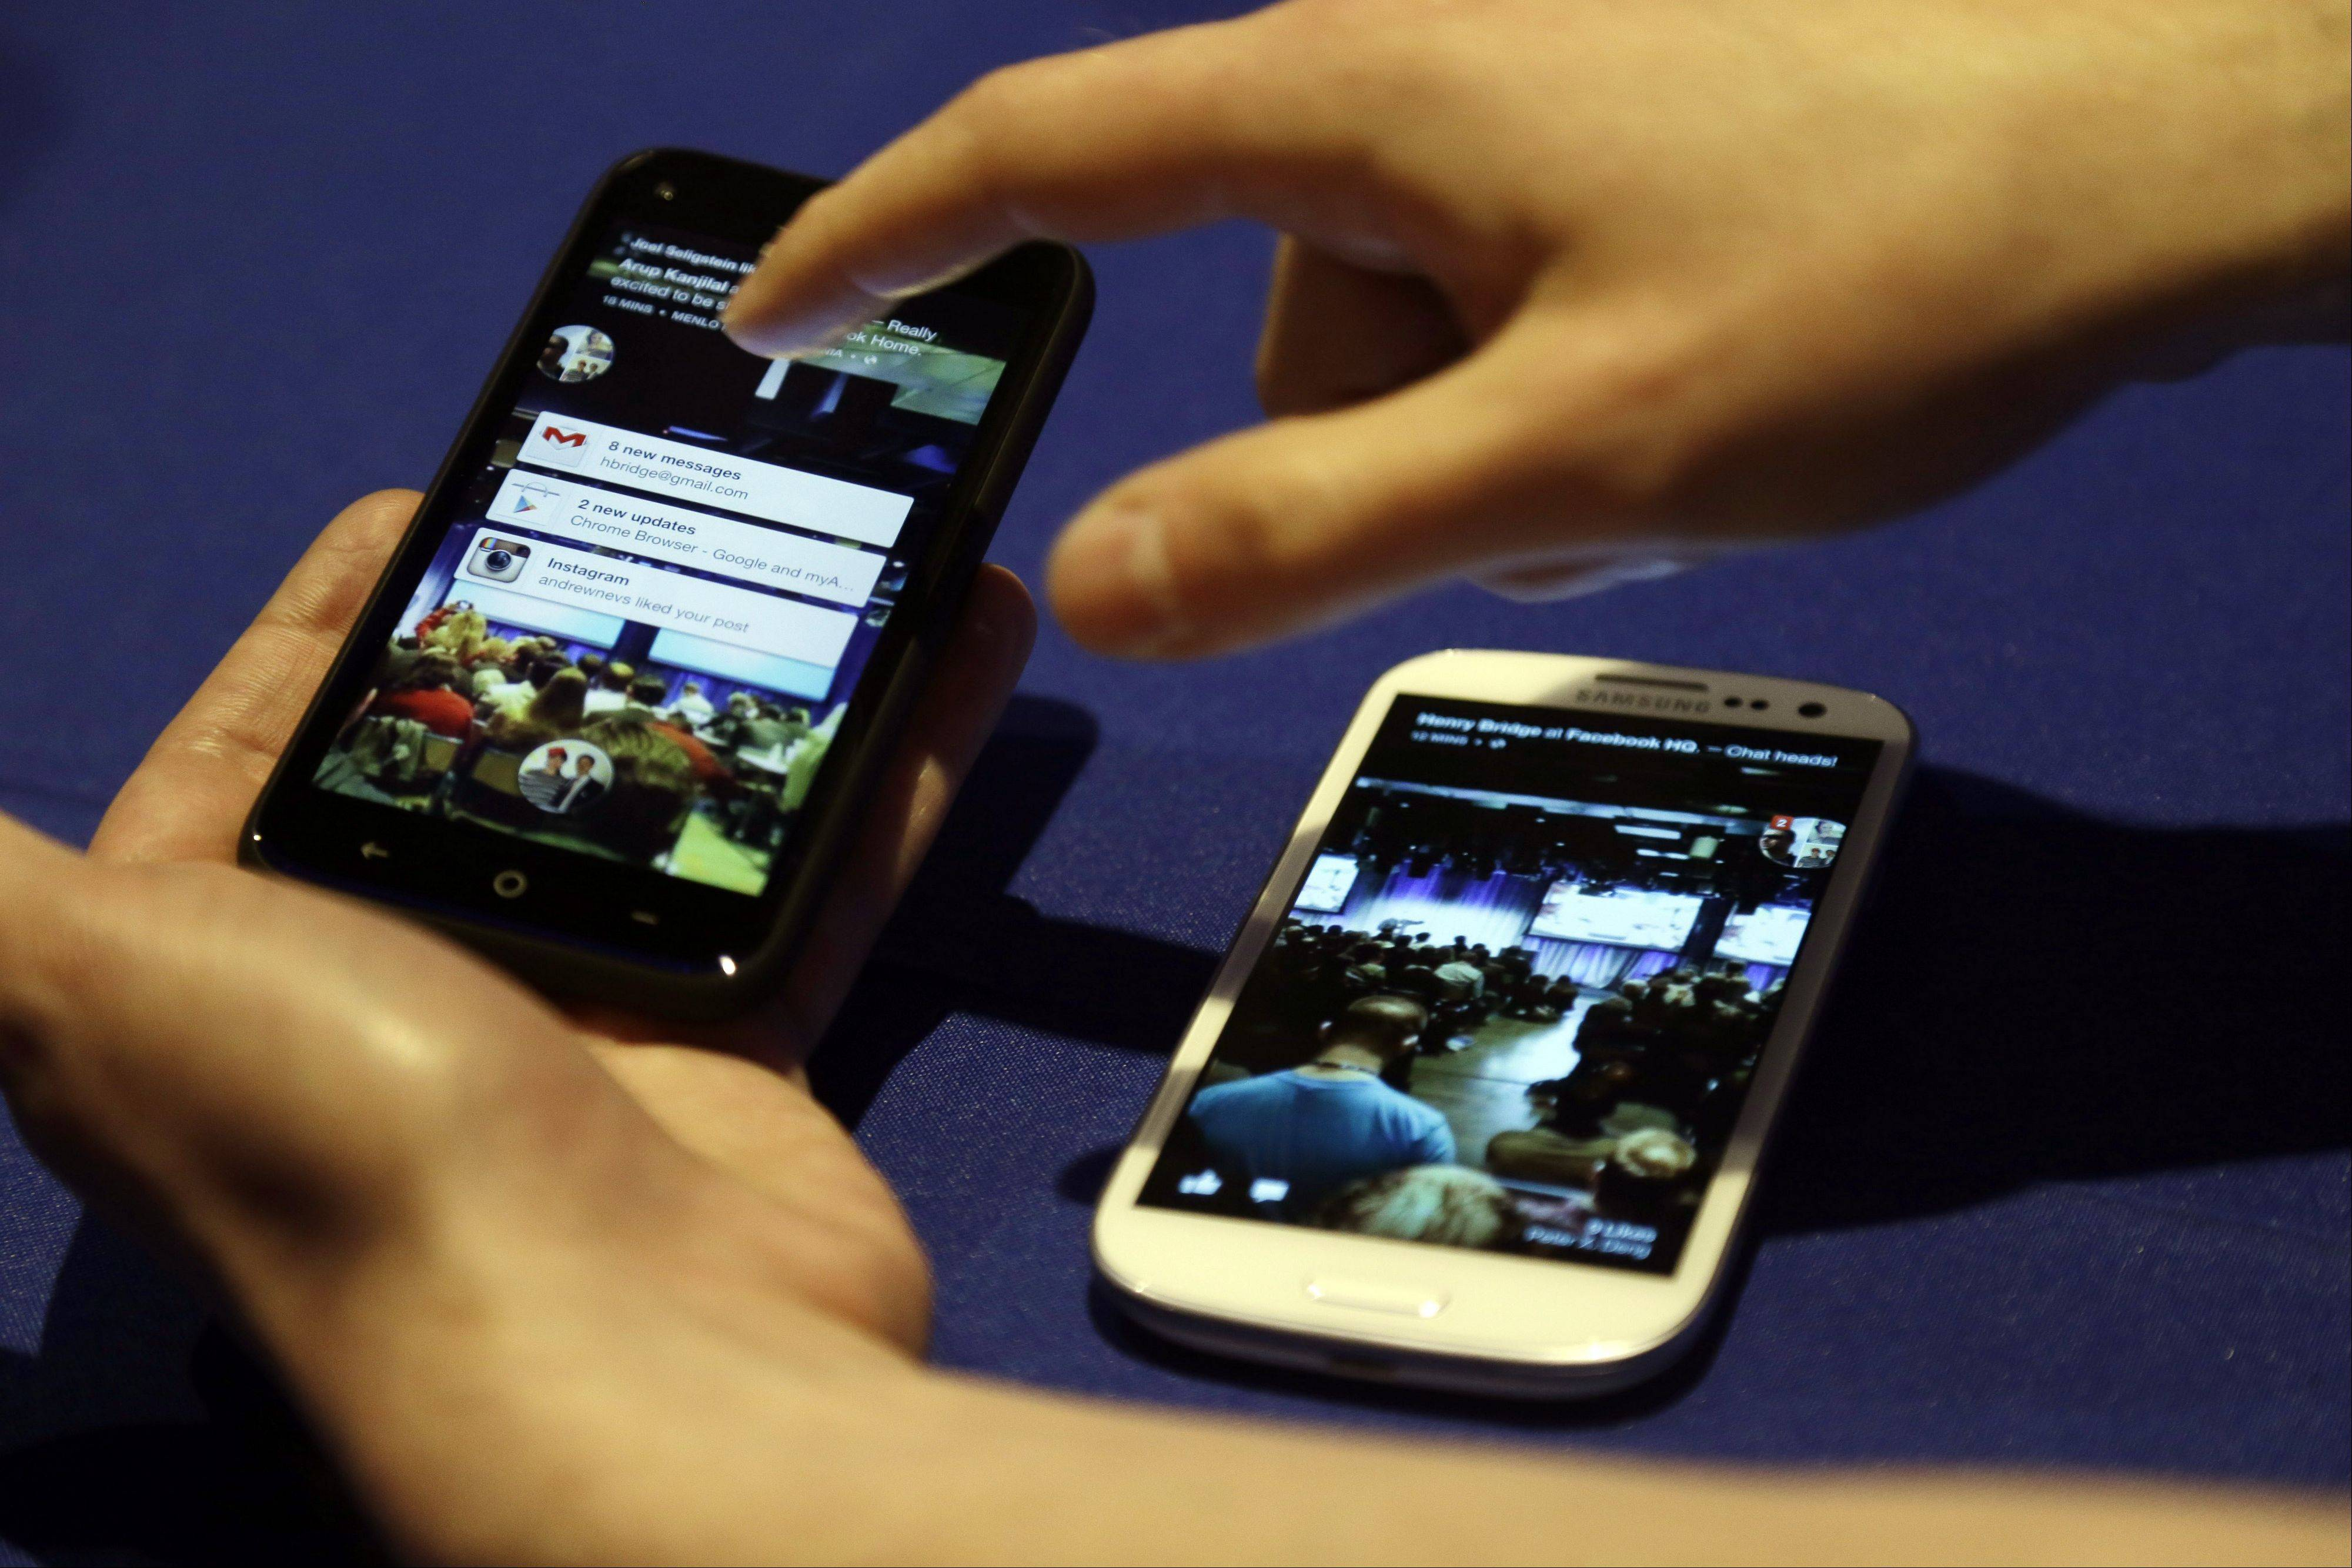 Cellphones with the a new Facebook interface are displayed Thursday at the company's headquarters in Menlo Park, Calif.